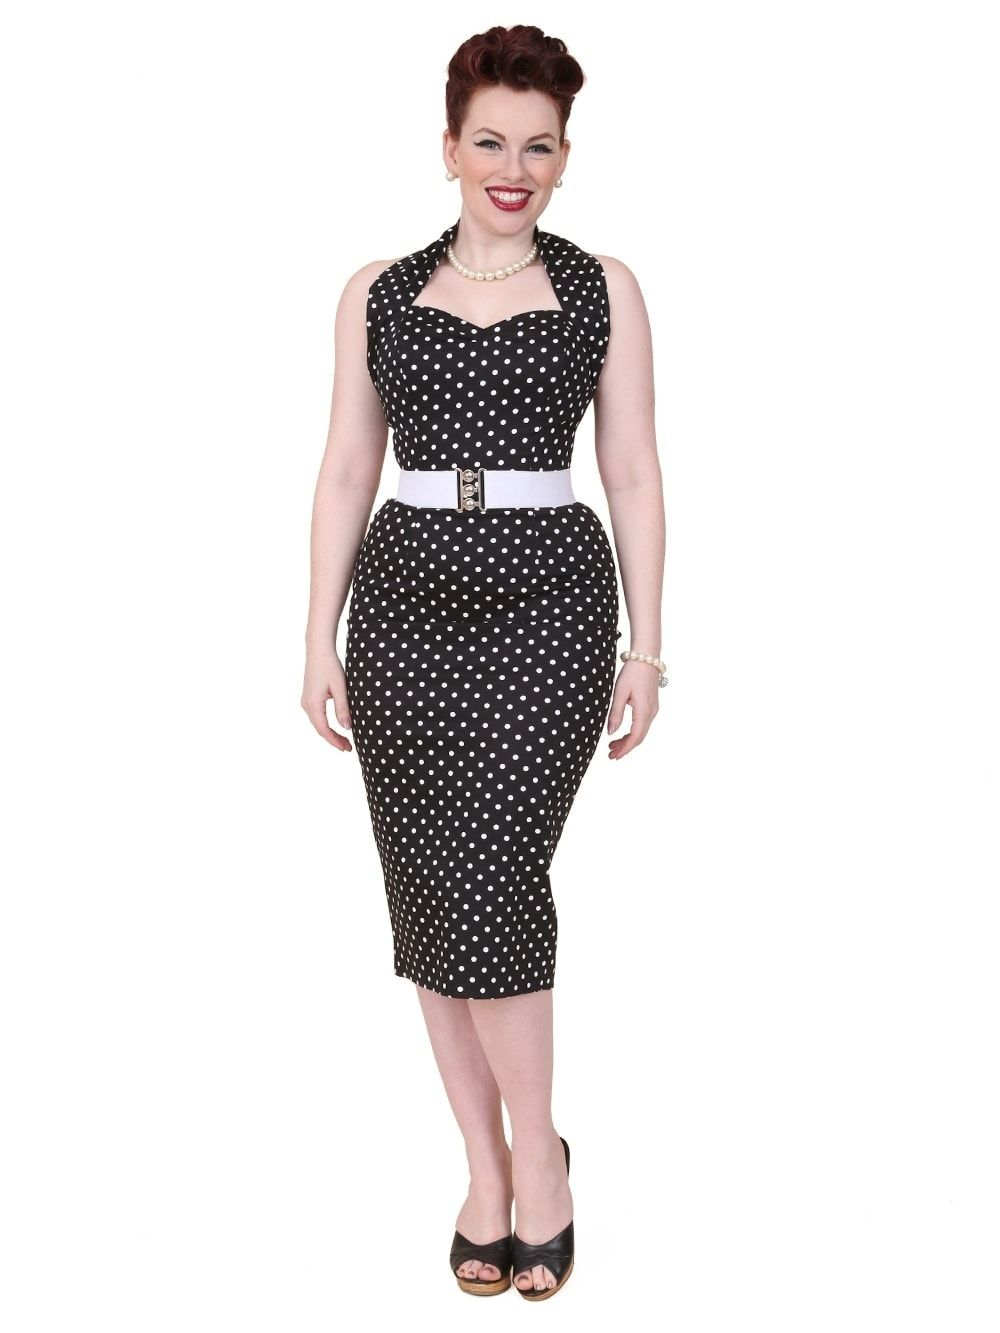 cf7f99a2eff7 50s-1950s-Vivien-of-Holloway-Best-Vintage-Reproduction-Halterneck -Pencil-Wiggle-Dress-Black-White-Spot-Rockabilly-Pinup